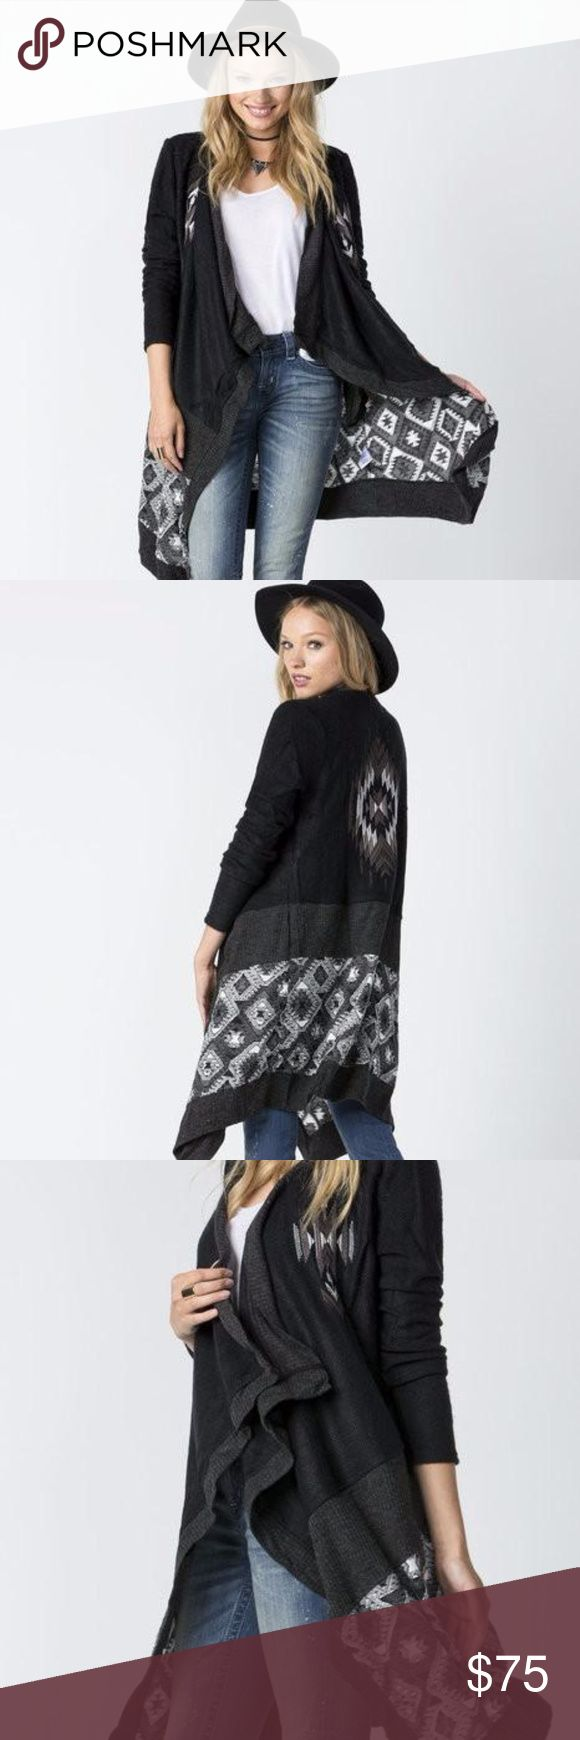 """SALE! Miss Me Southwestern Knee Length Cardigan This cardigan with keep you warm and chic all season long!  Details include tribal pattern at back and bottom half, knee-grazing length, drapy collar, and contrast ribbed trimming throughout.  100% Acrylic Imported Machine Wash Mixed media fabric accent details Long sleeve  Ssize2/4bust34 - 35""""waist26 - 27"""" Msize6/8bust36 - 37""""waist28 - 29"""" Miss Me Sweaters Cardigans"""